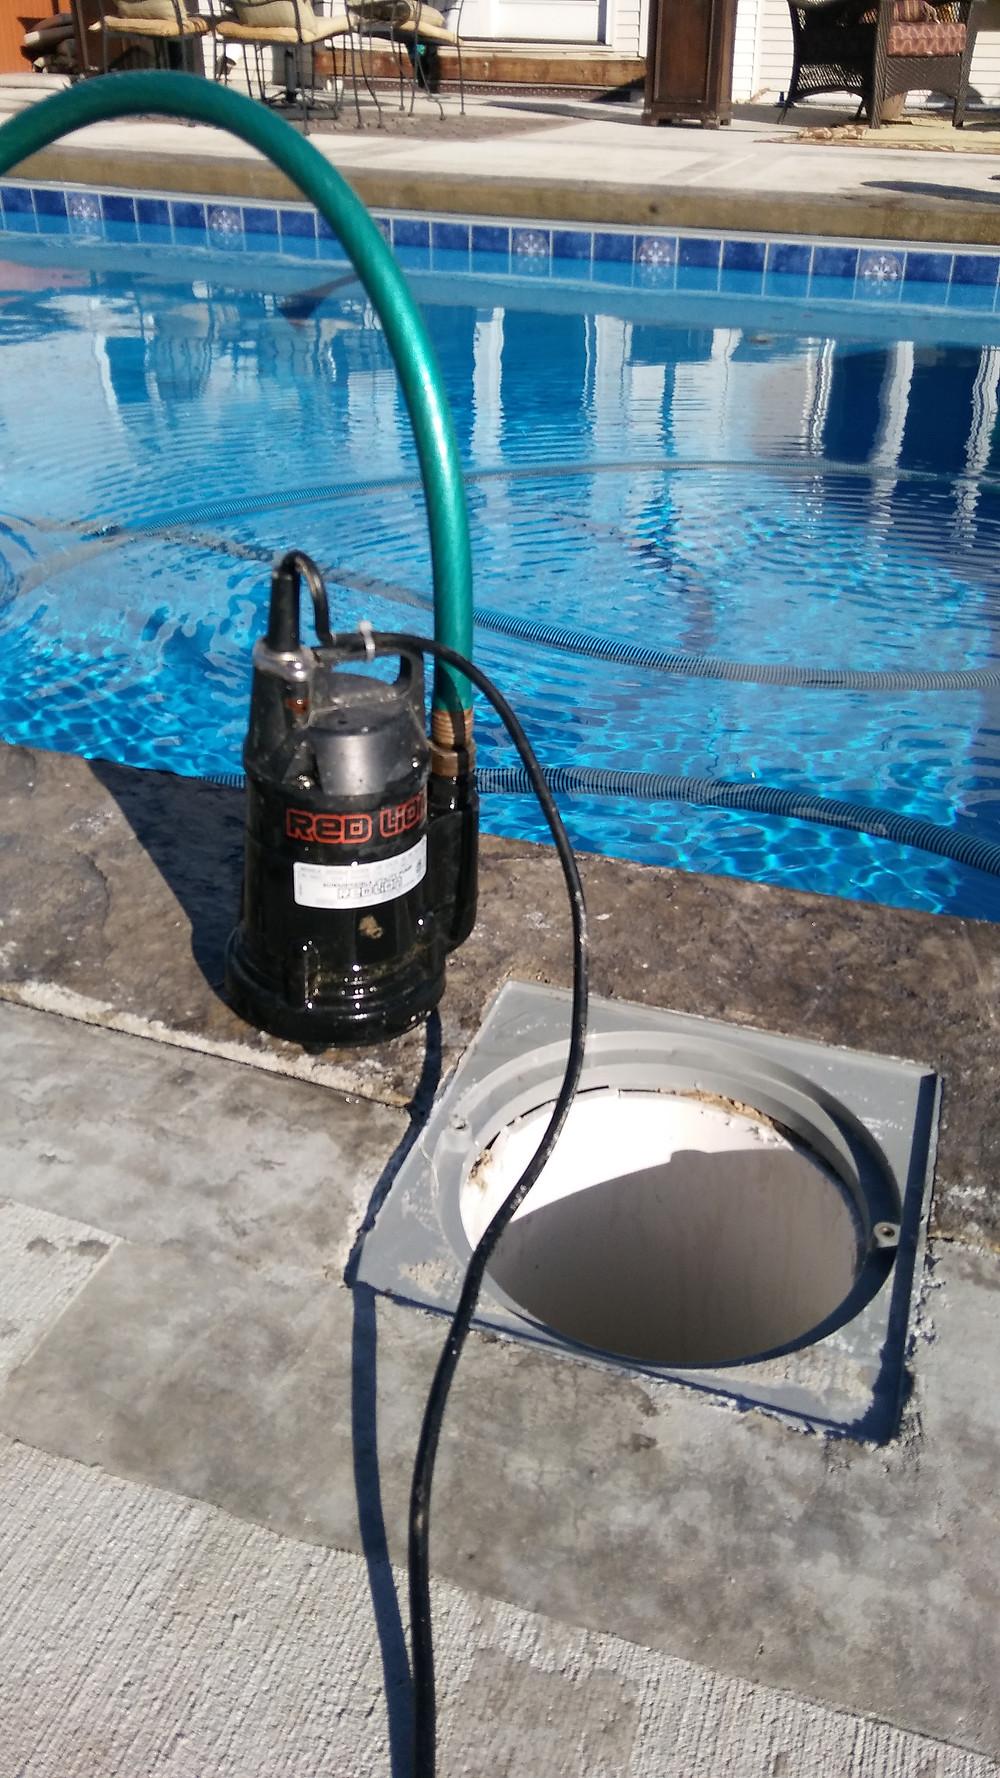 Sump Pump and exposed sump pipe on a fiberglass pool